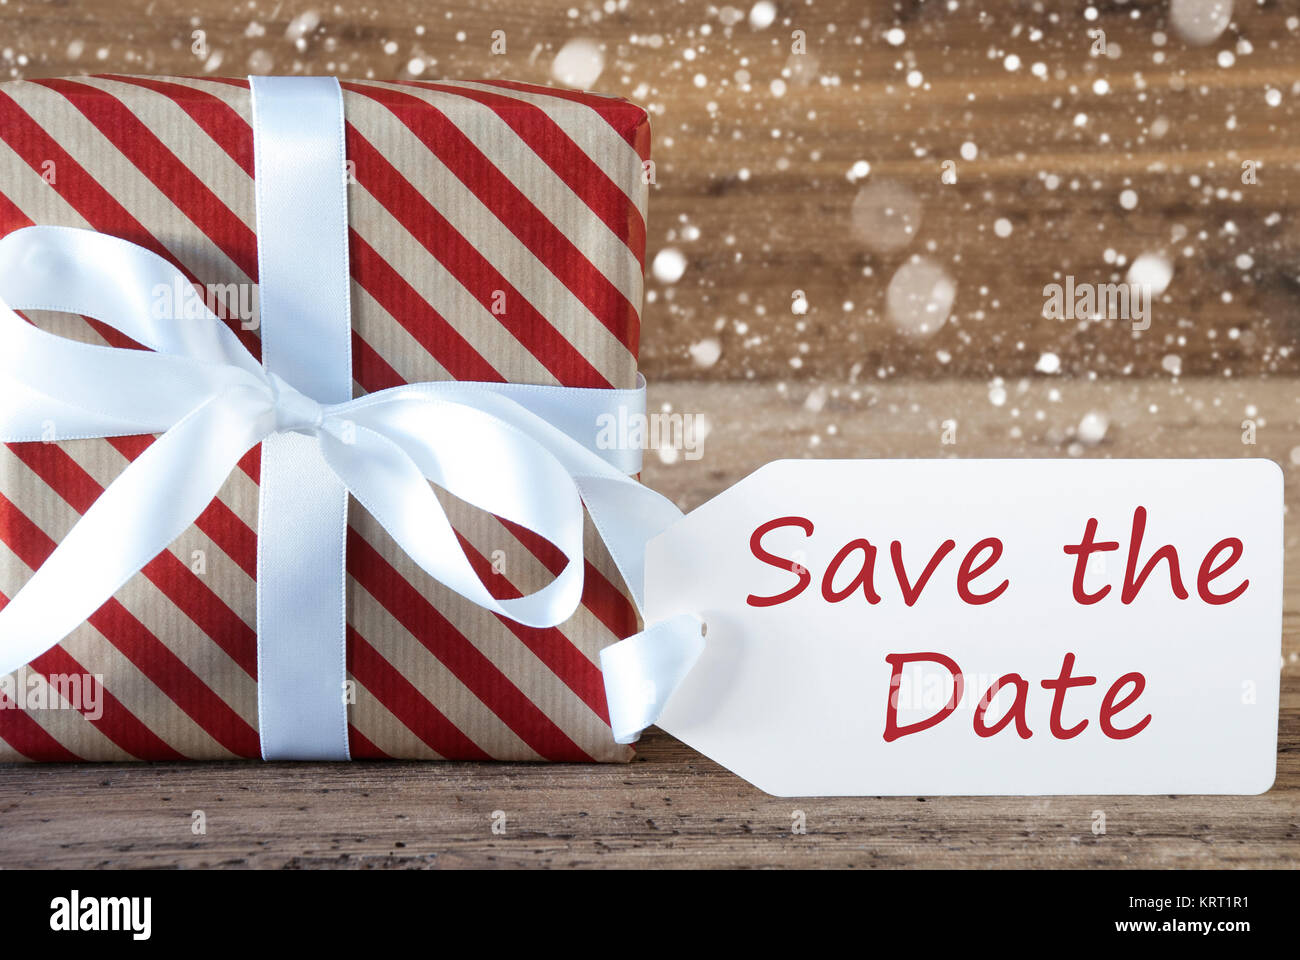 English Text Save The Date. Christmas Gift Or Present On Wooden ...